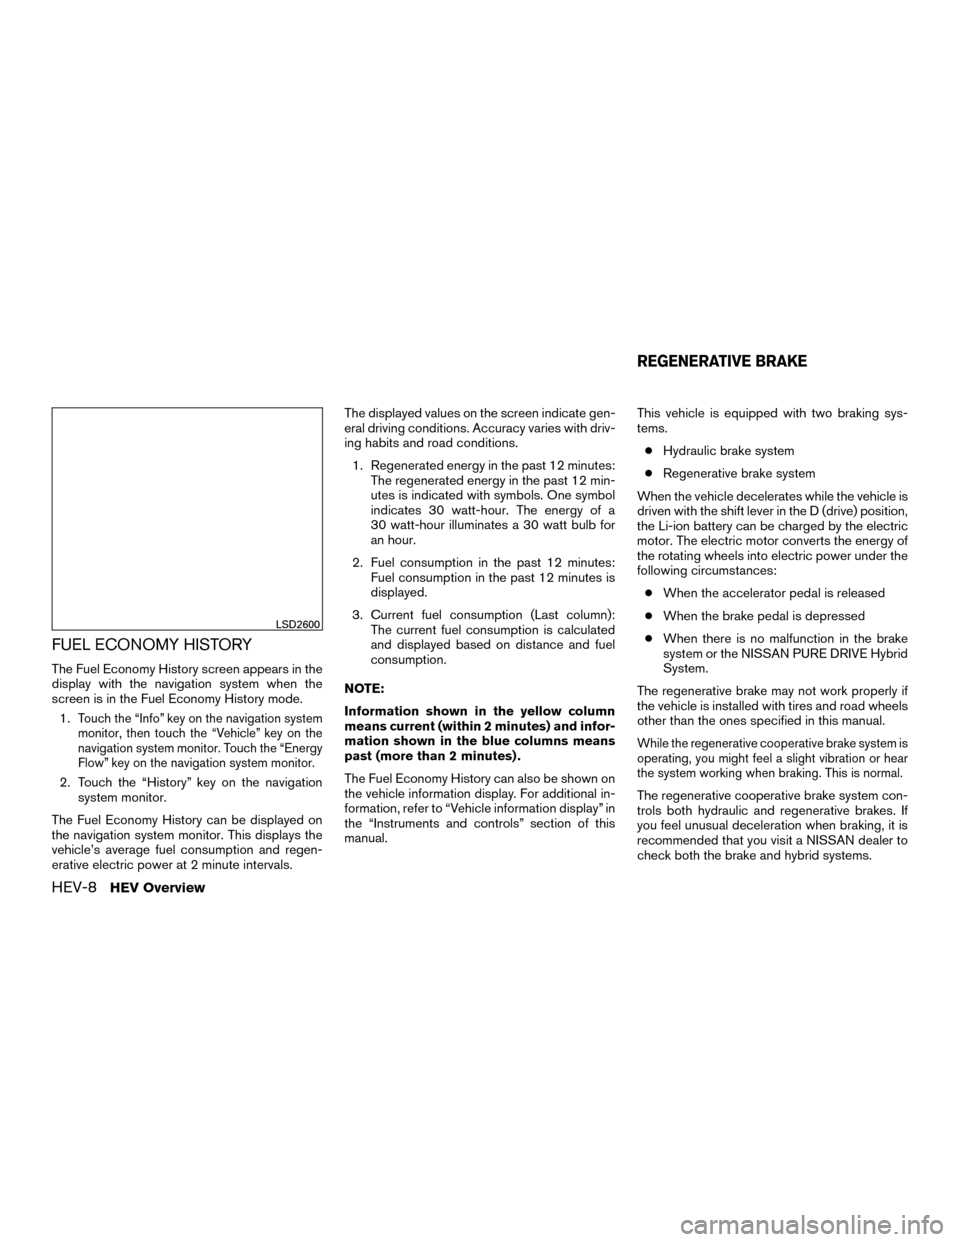 NISSAN MURANO HYBRID 2016 3.G Owners Manual, Page 15